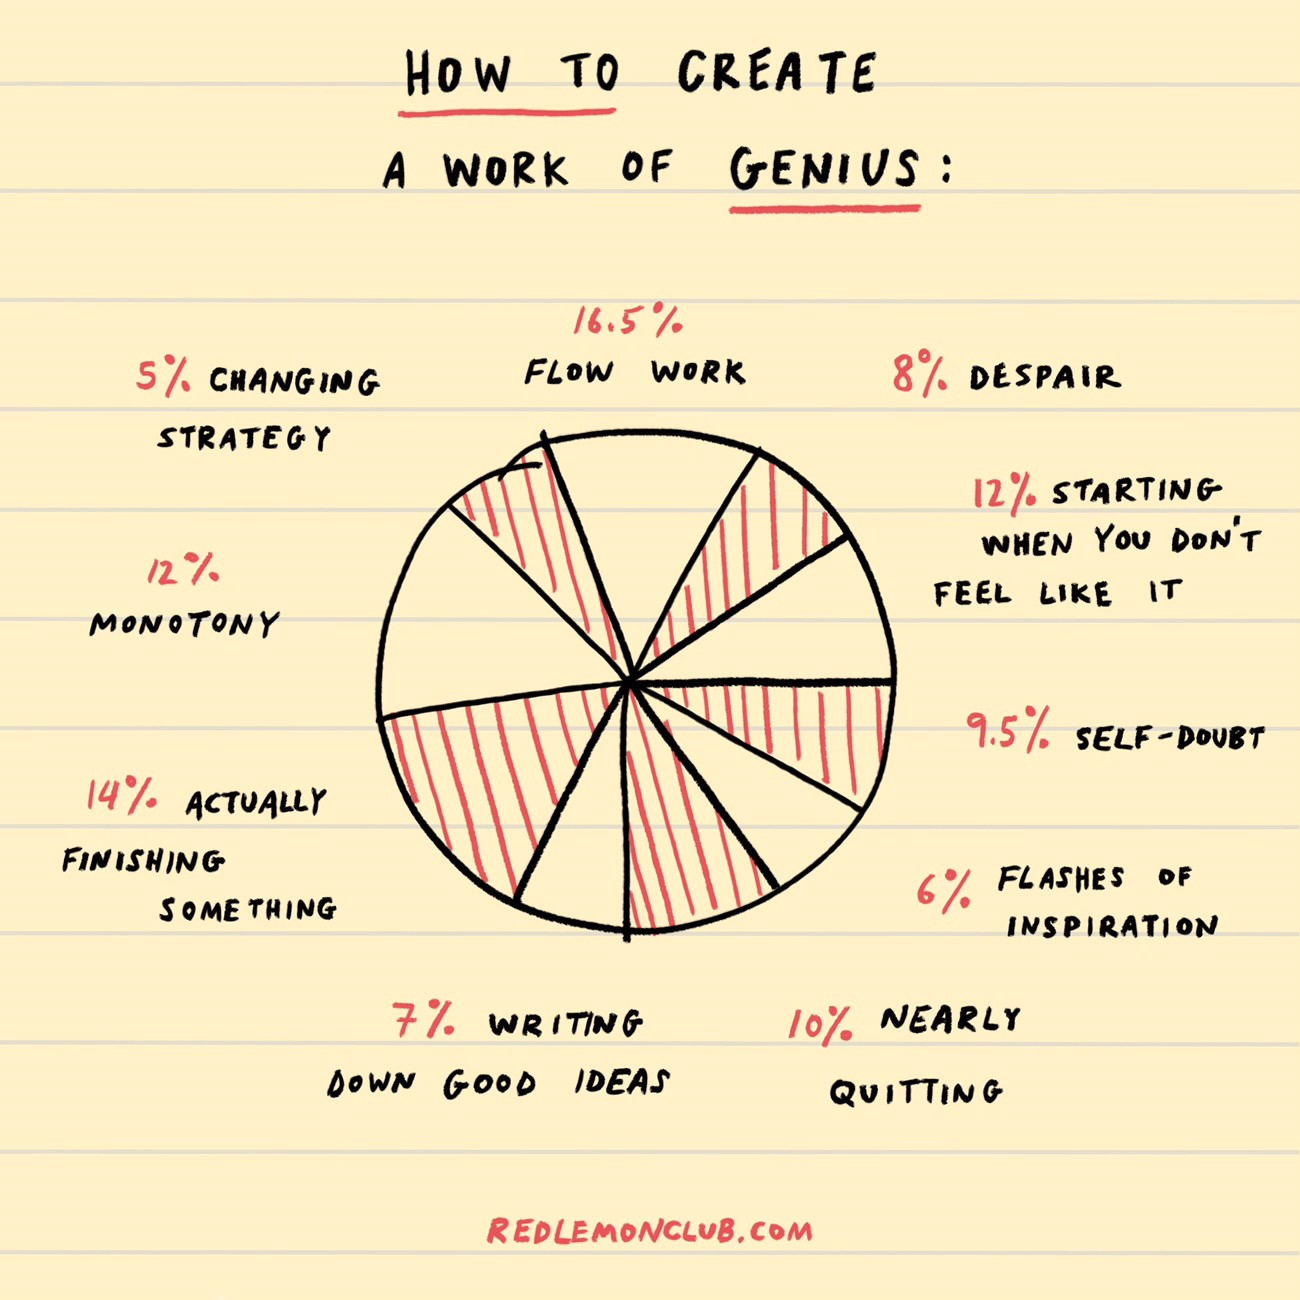 Ten drawings for creative people to motivate and inspire